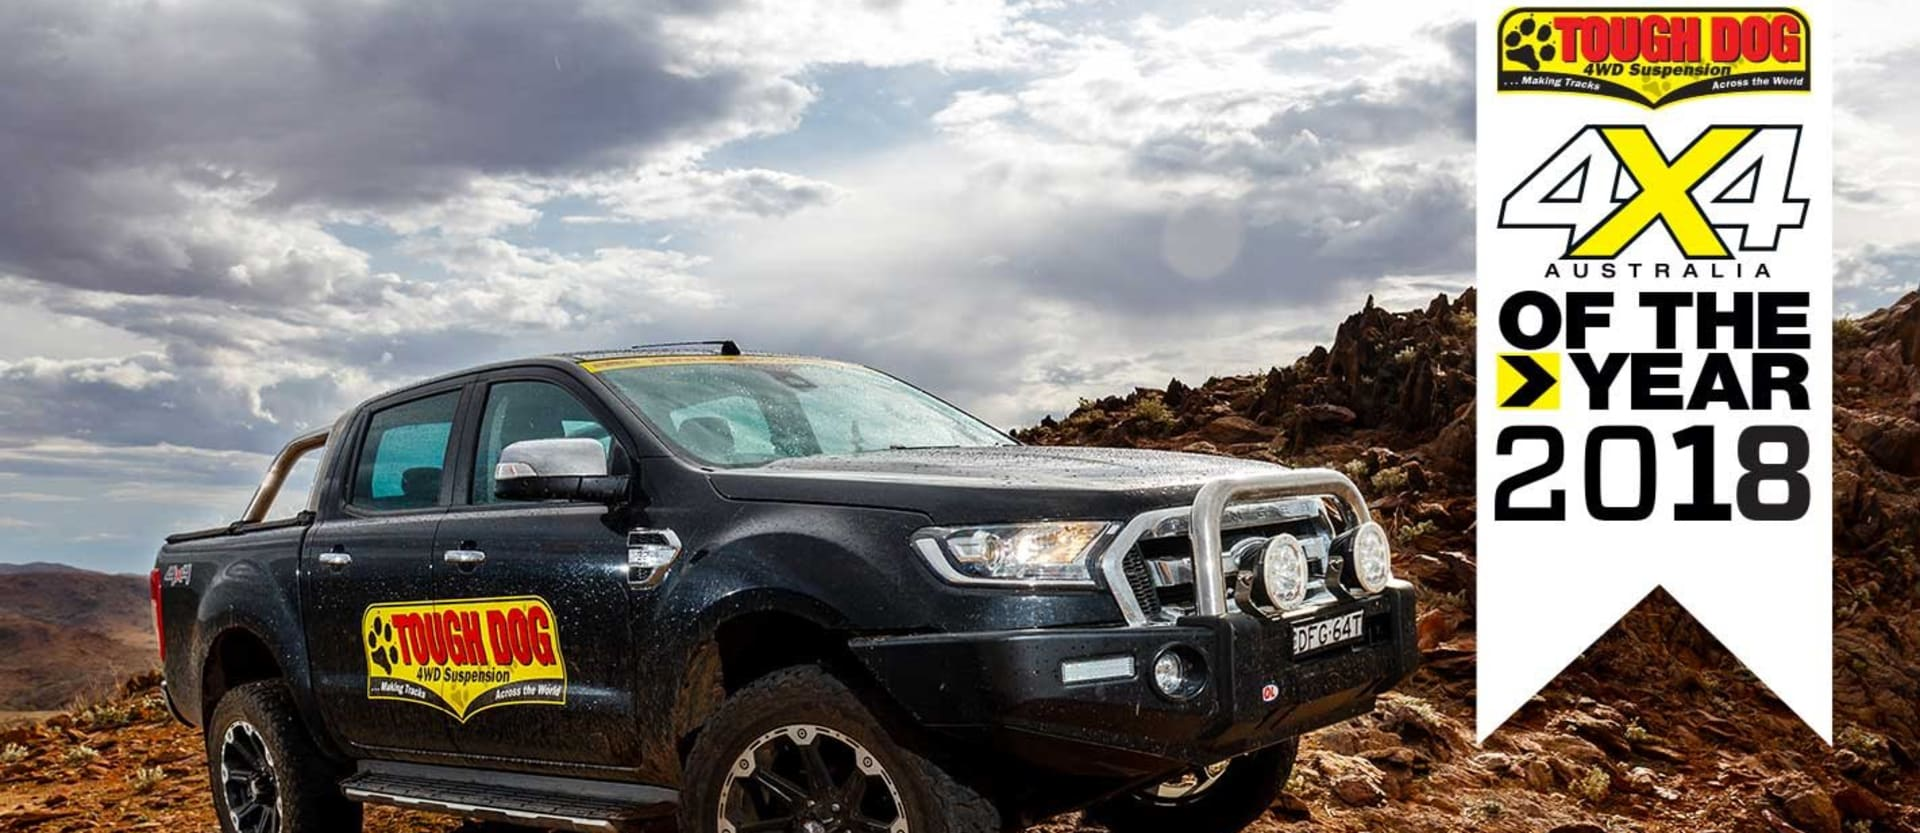 4x4 of The Year 2018 Tough Dog 4WD Suspension feature